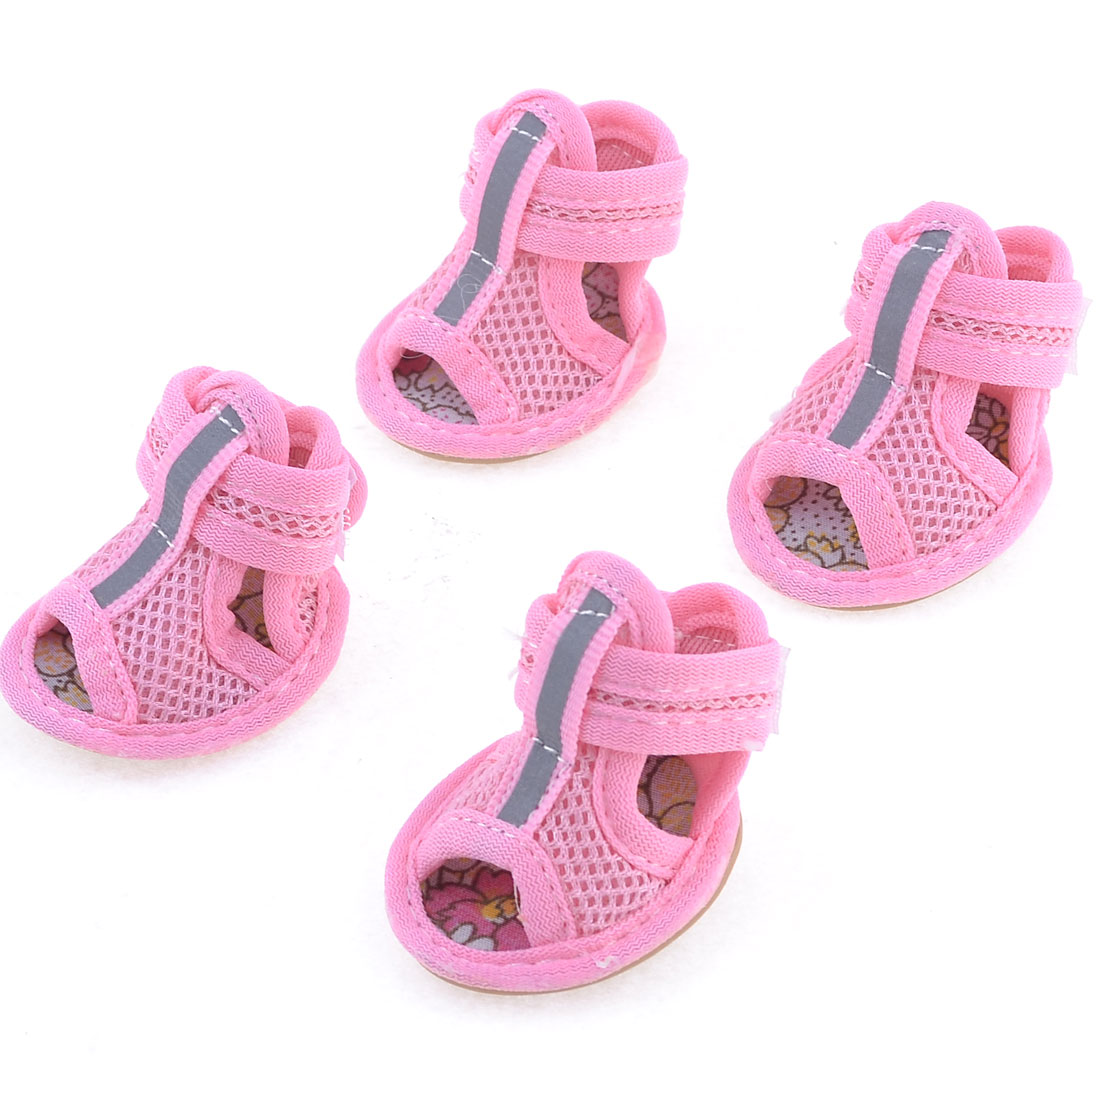 2 Pairs Rubber Sole Pink Mesh Sandals Yorkie Chihuaha Dog Shoes Size L